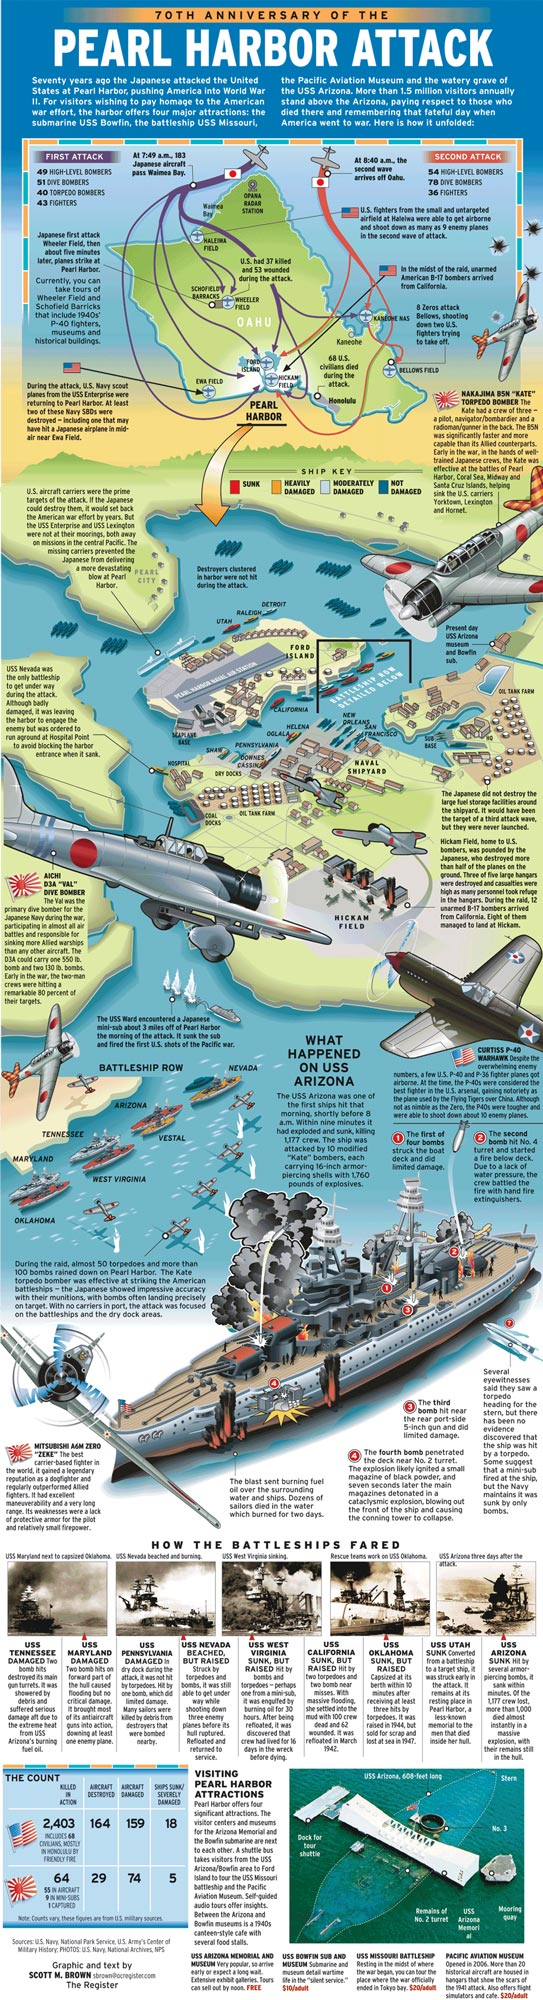 pearl harbor attack infographic